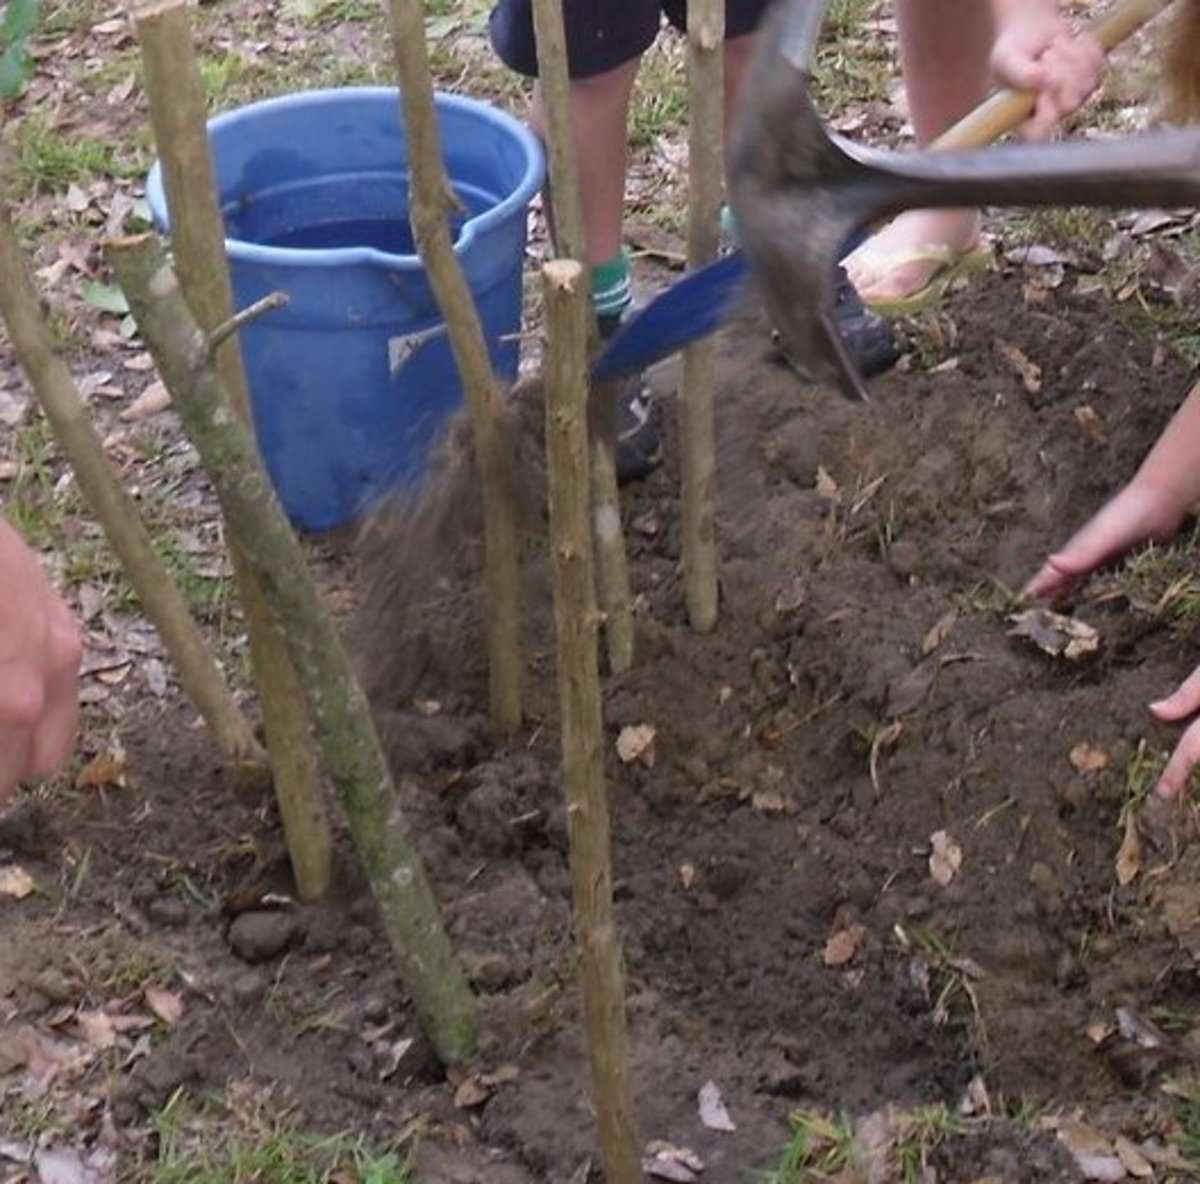 While 1 group held up their sticks on their side, the others scooped up dirt around the main post sticks & packed the dirt.